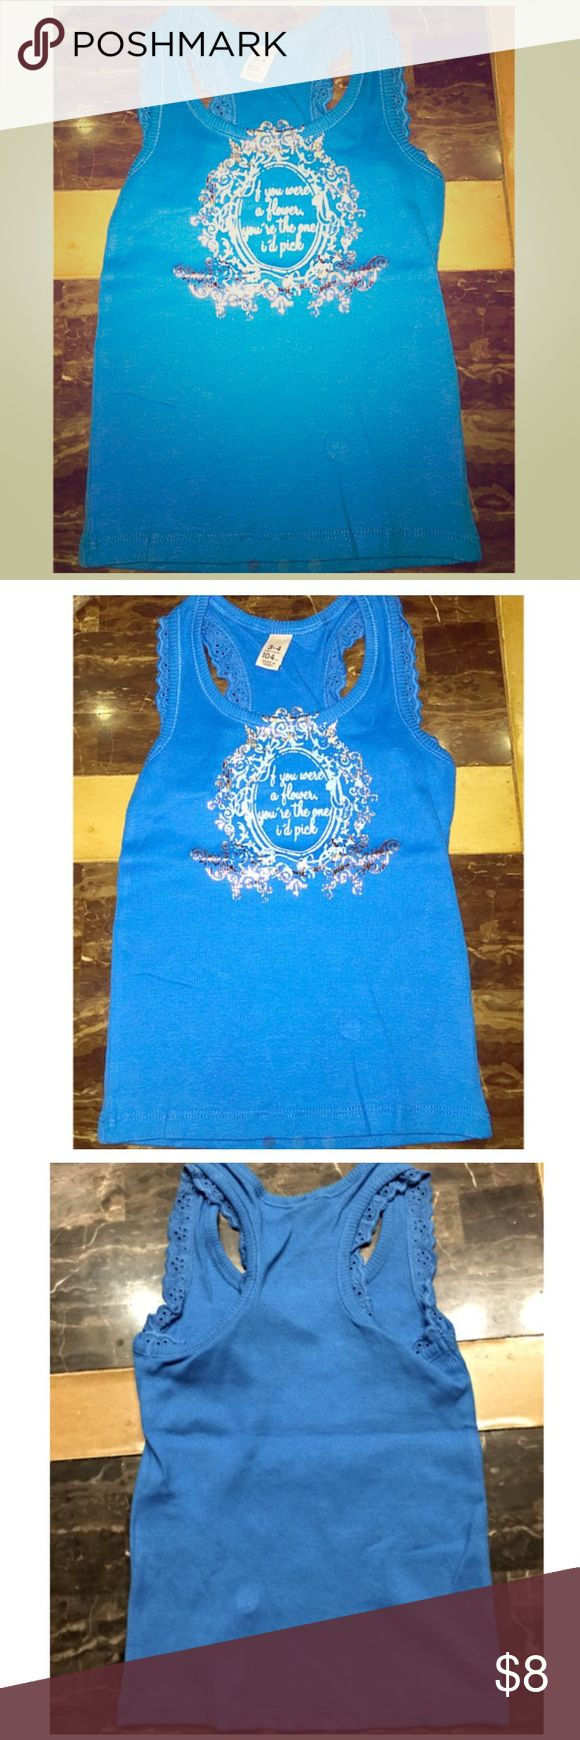 Blue Cami Size 3/4 New with out tags! Bundle to save! Shirts & Tops Tank Tops